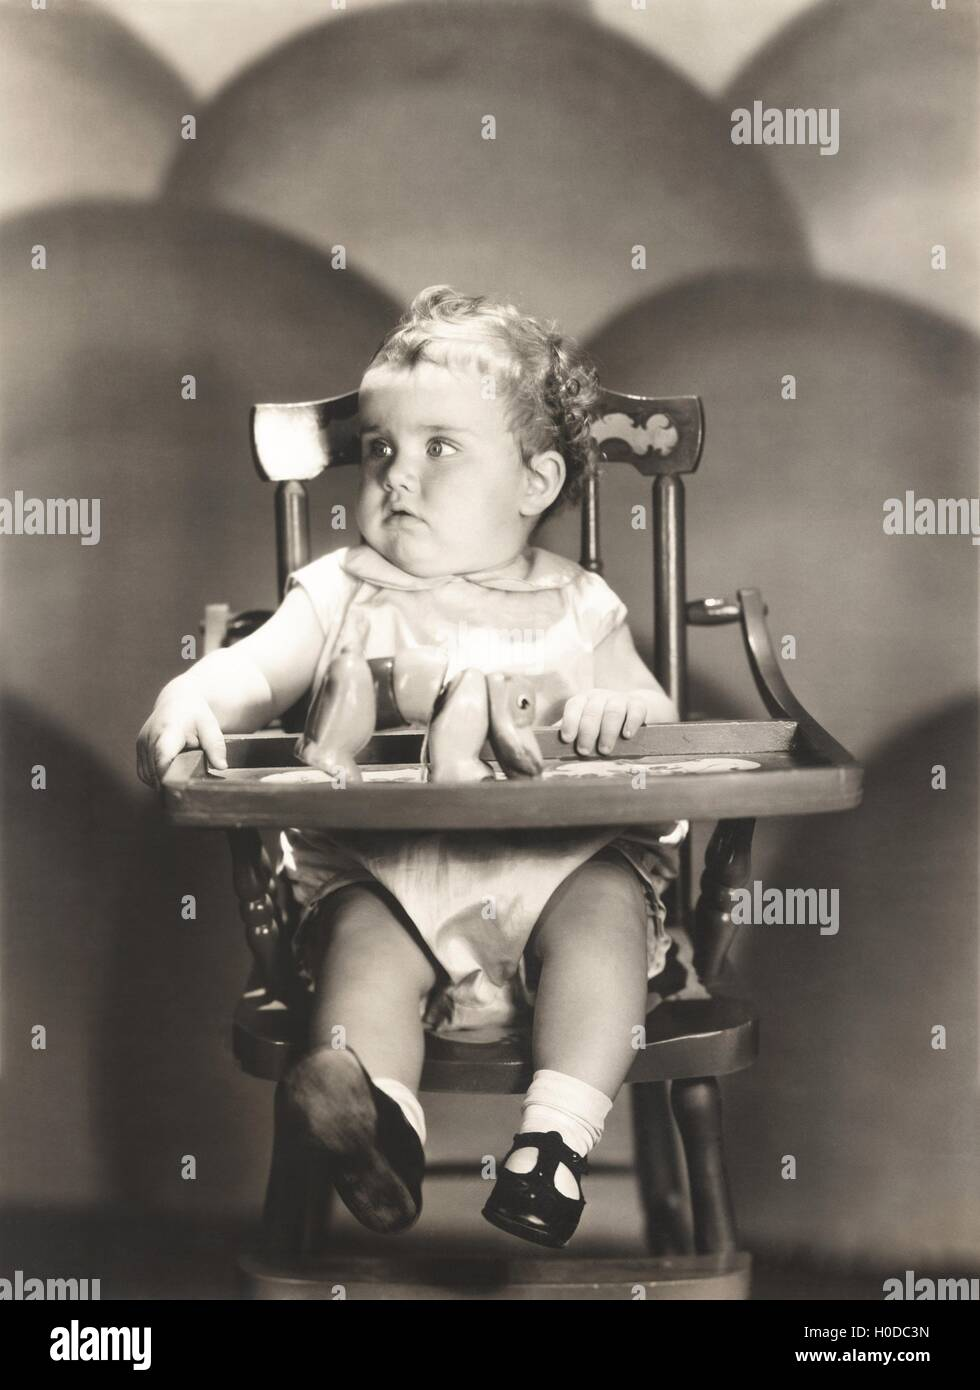 Cute baby sitting on high chair - Stock Image